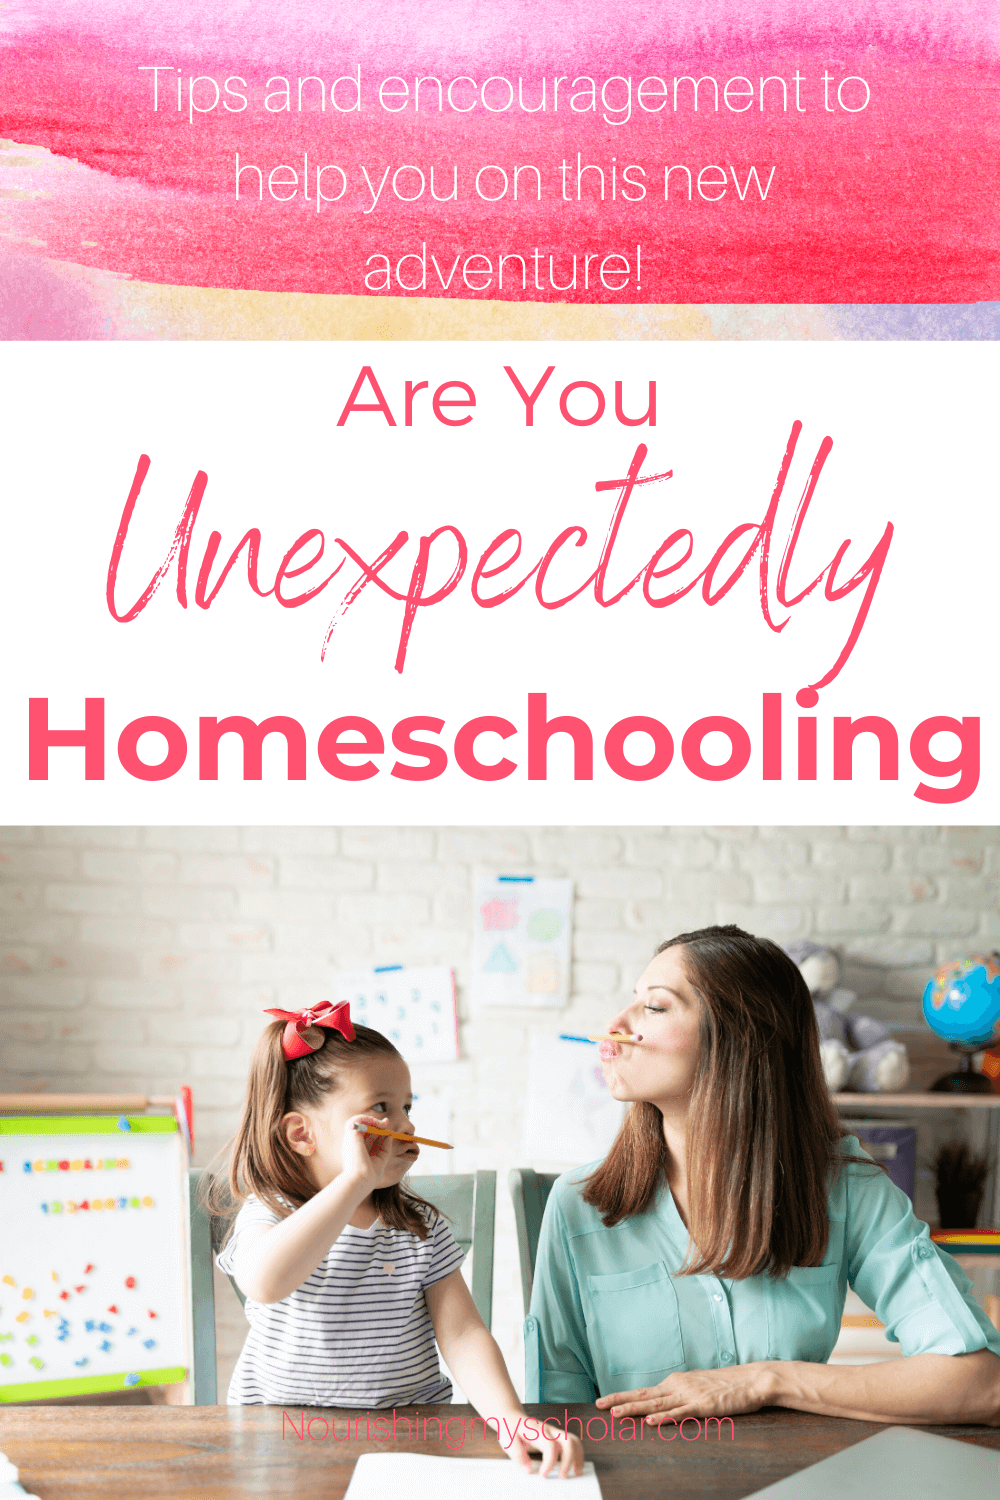 Are You Unexpectedly Homeschooling: Parents all over the internet are suddenly finding themselves unexpectedly homeschooling! Read on for my best tips! #homeschool #homeschooling #unexpectedlyhomeschooling